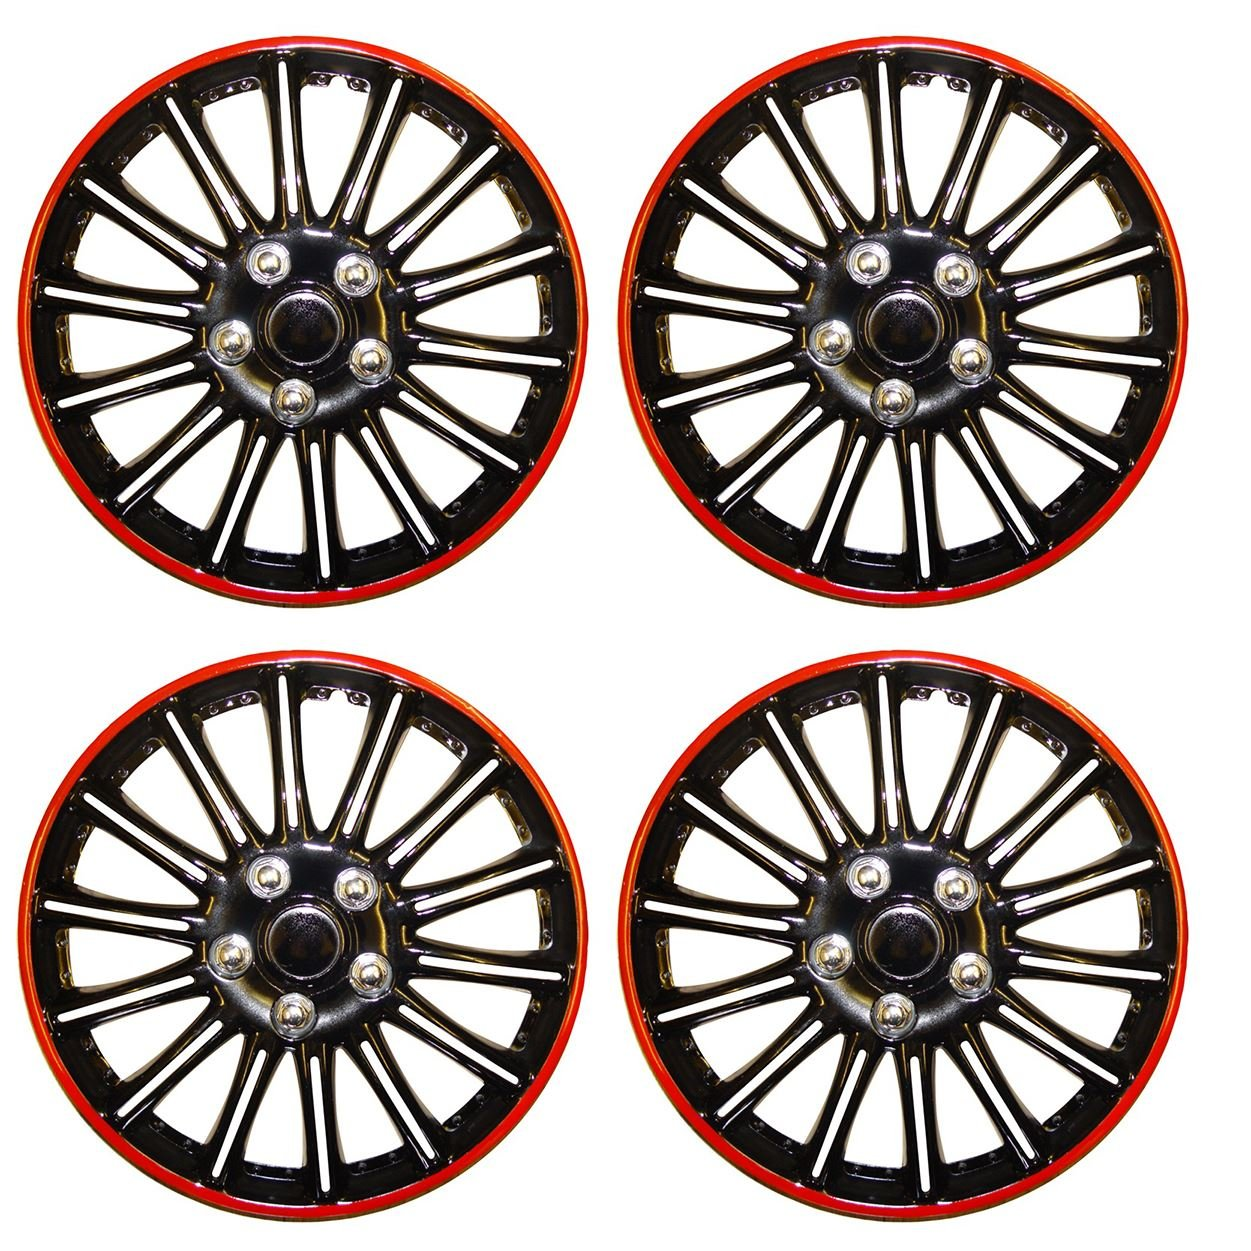 UKB4C Set of 4 14' Black/Red Wheel Trims/Hub Caps fits Peugeot 106 107 206 207